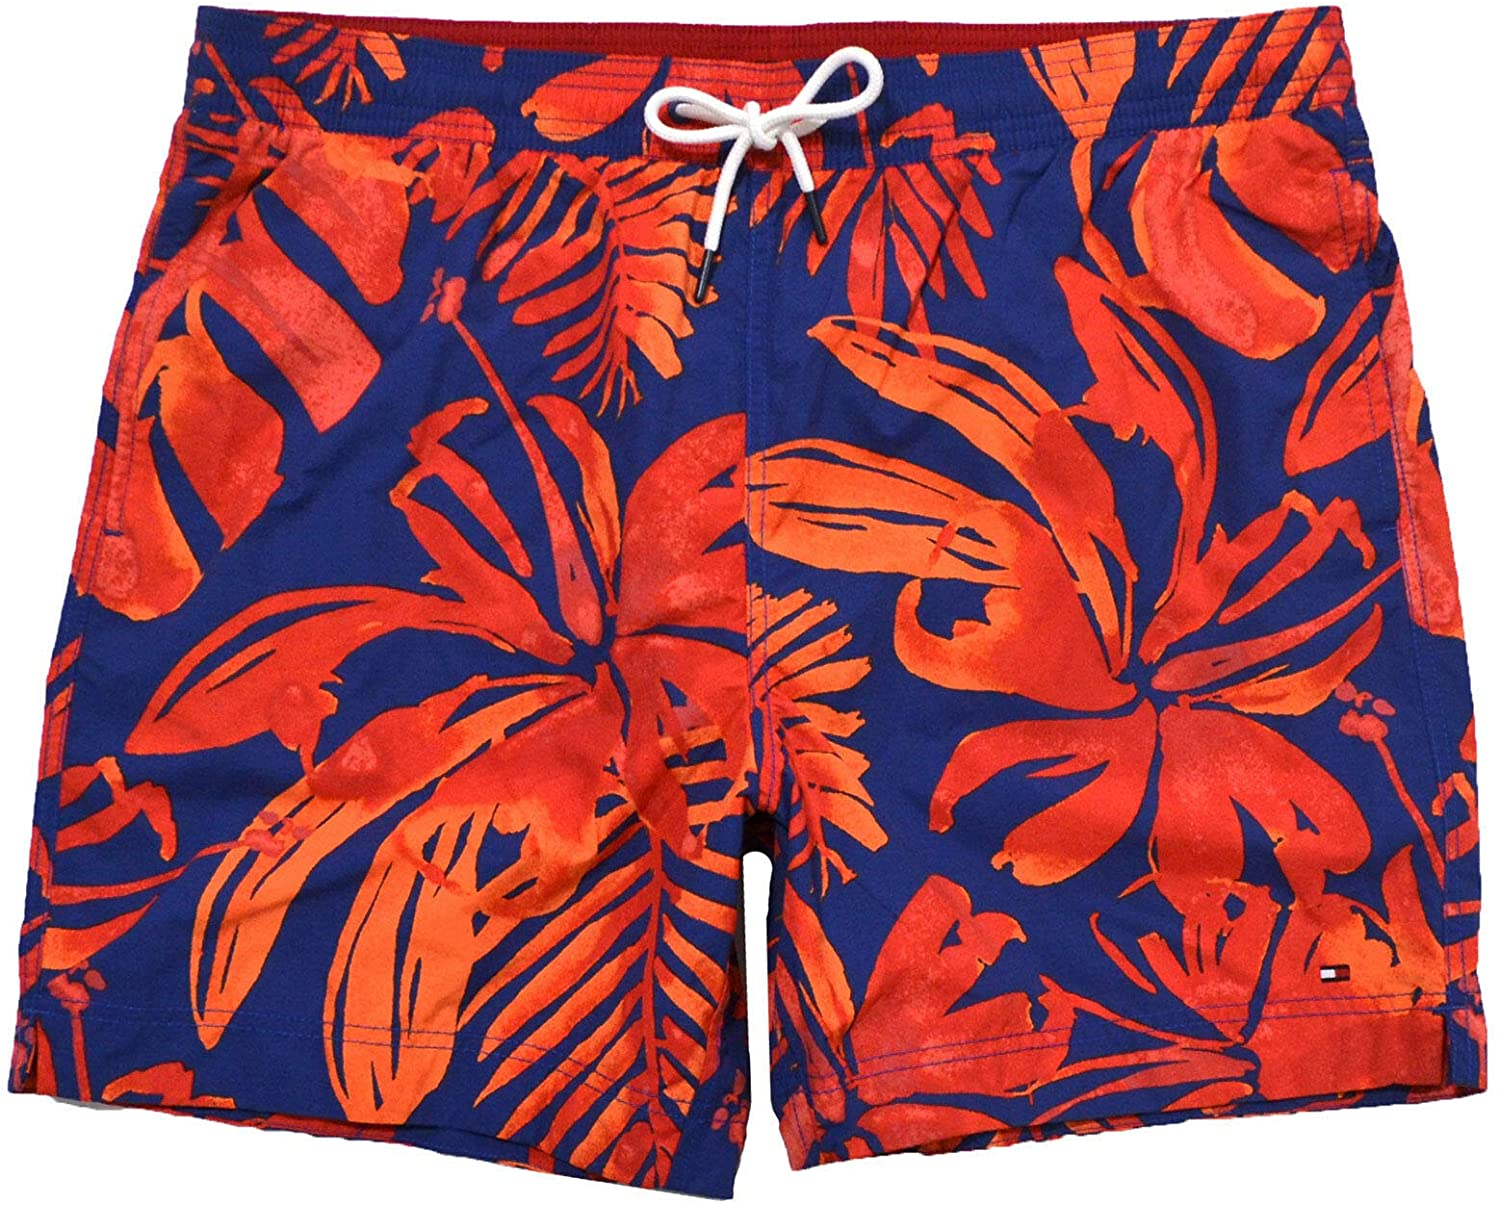 Tommy Hilfiger Mens Hawaiian Bathing Suit (X-Large, Orange)